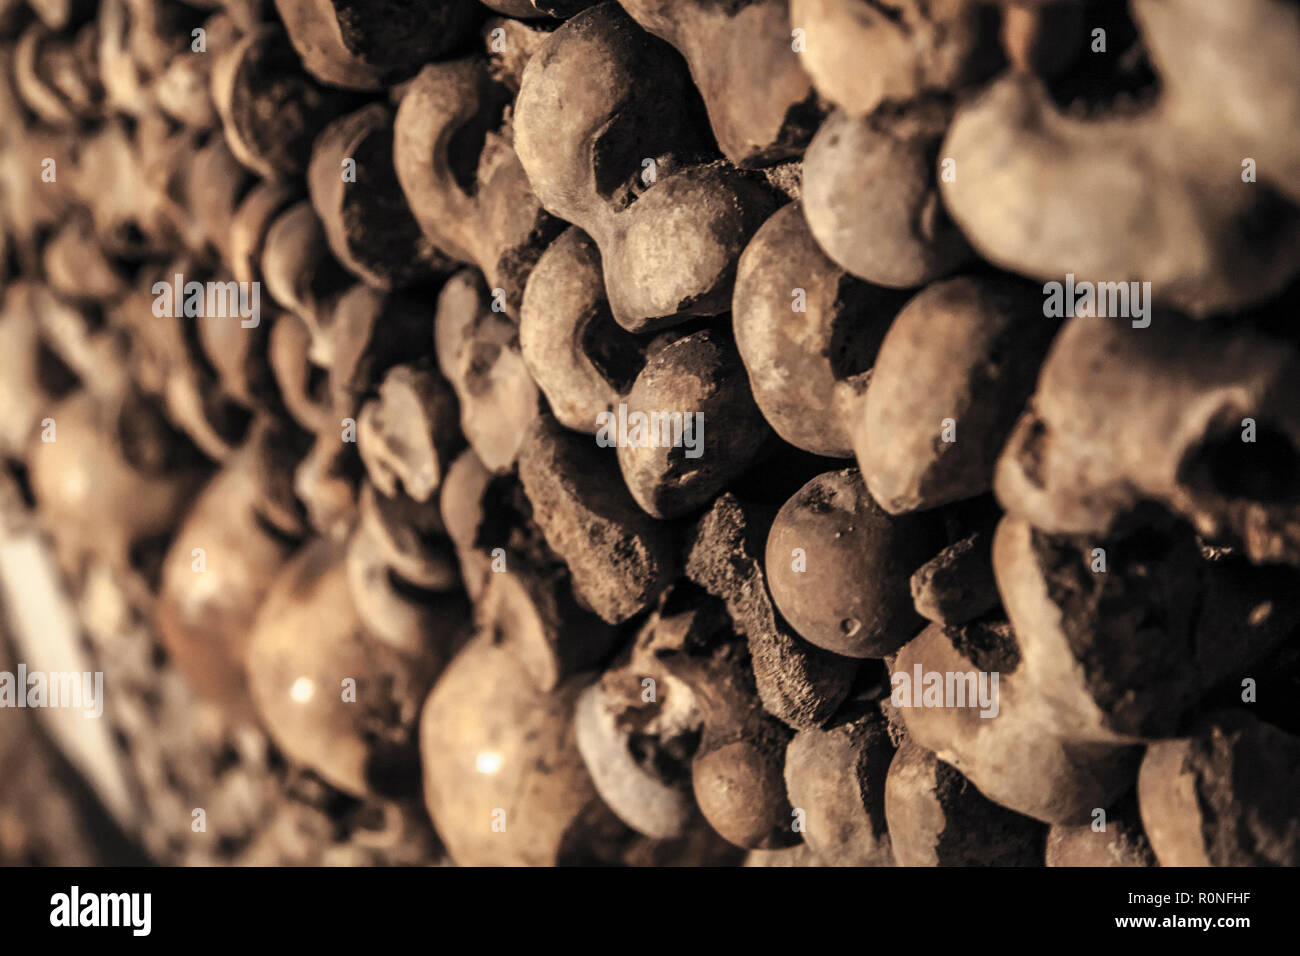 catacombs of Paris. Burial of millions of people in underground labyrinths. - Stock Image